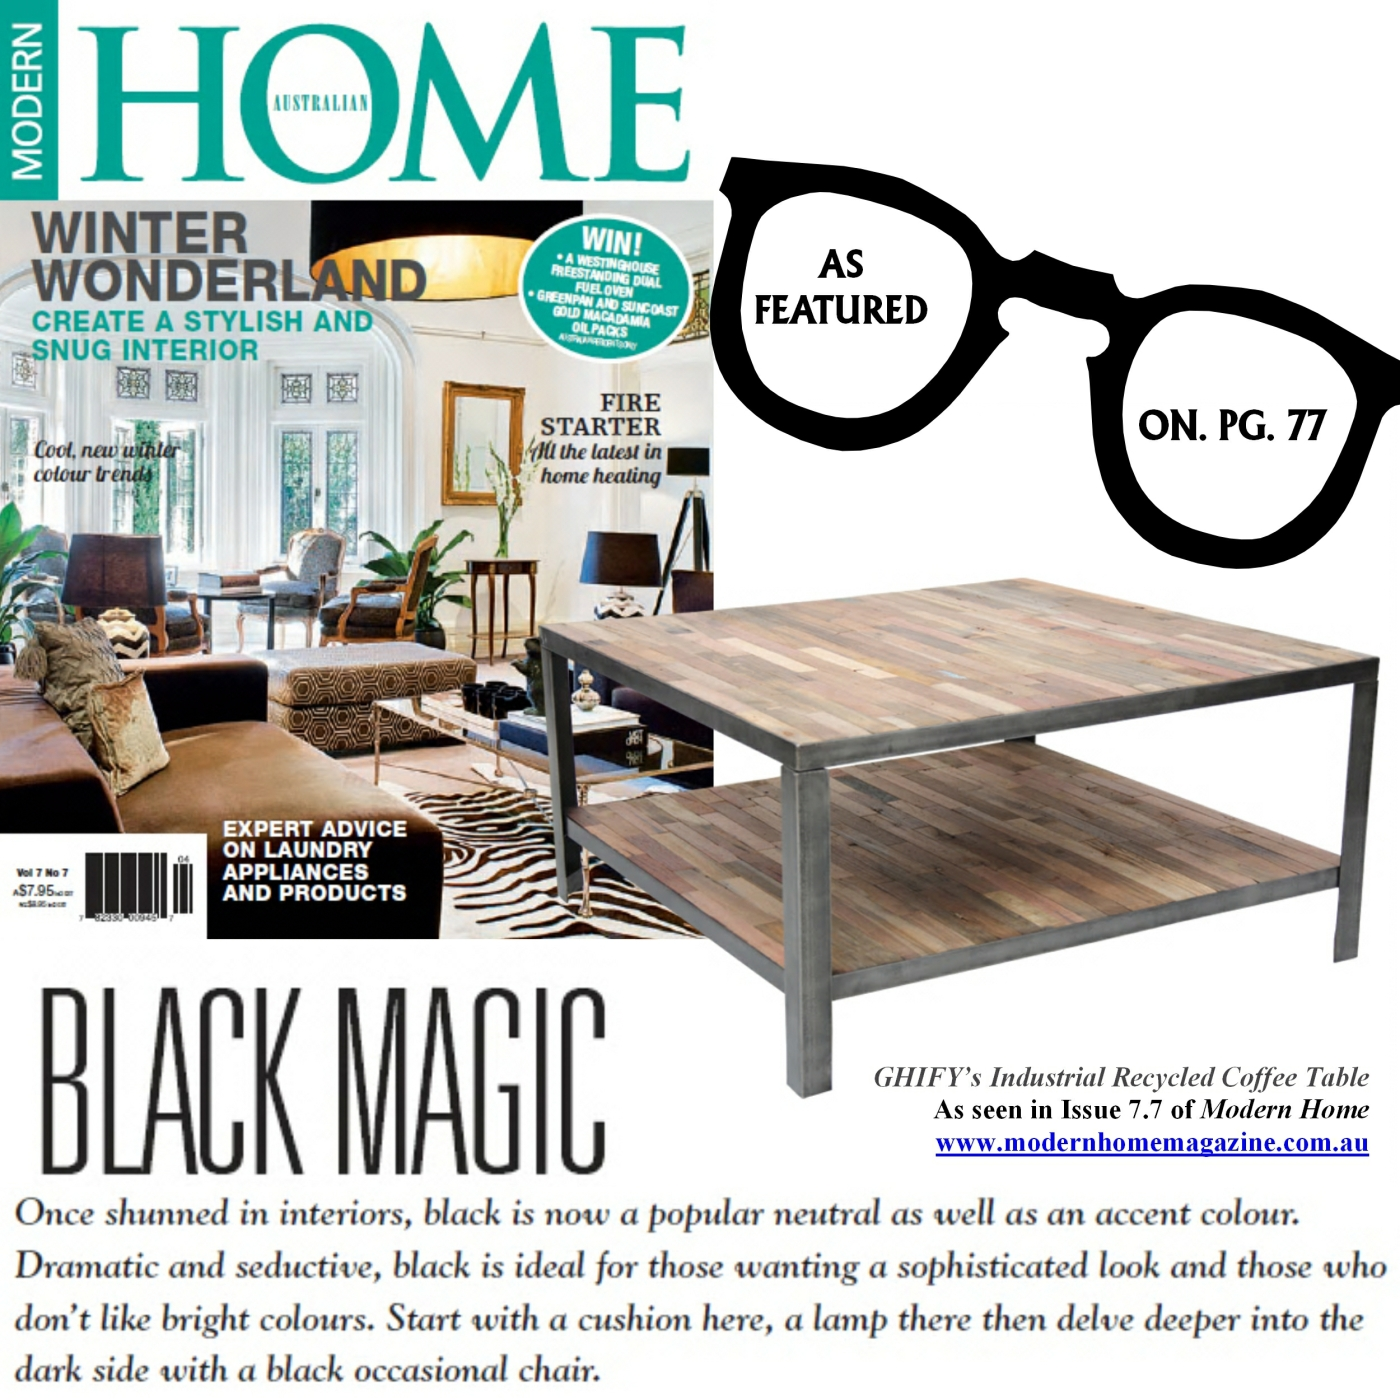 featured in modern home magazine issue 7.7 – the ghify blog